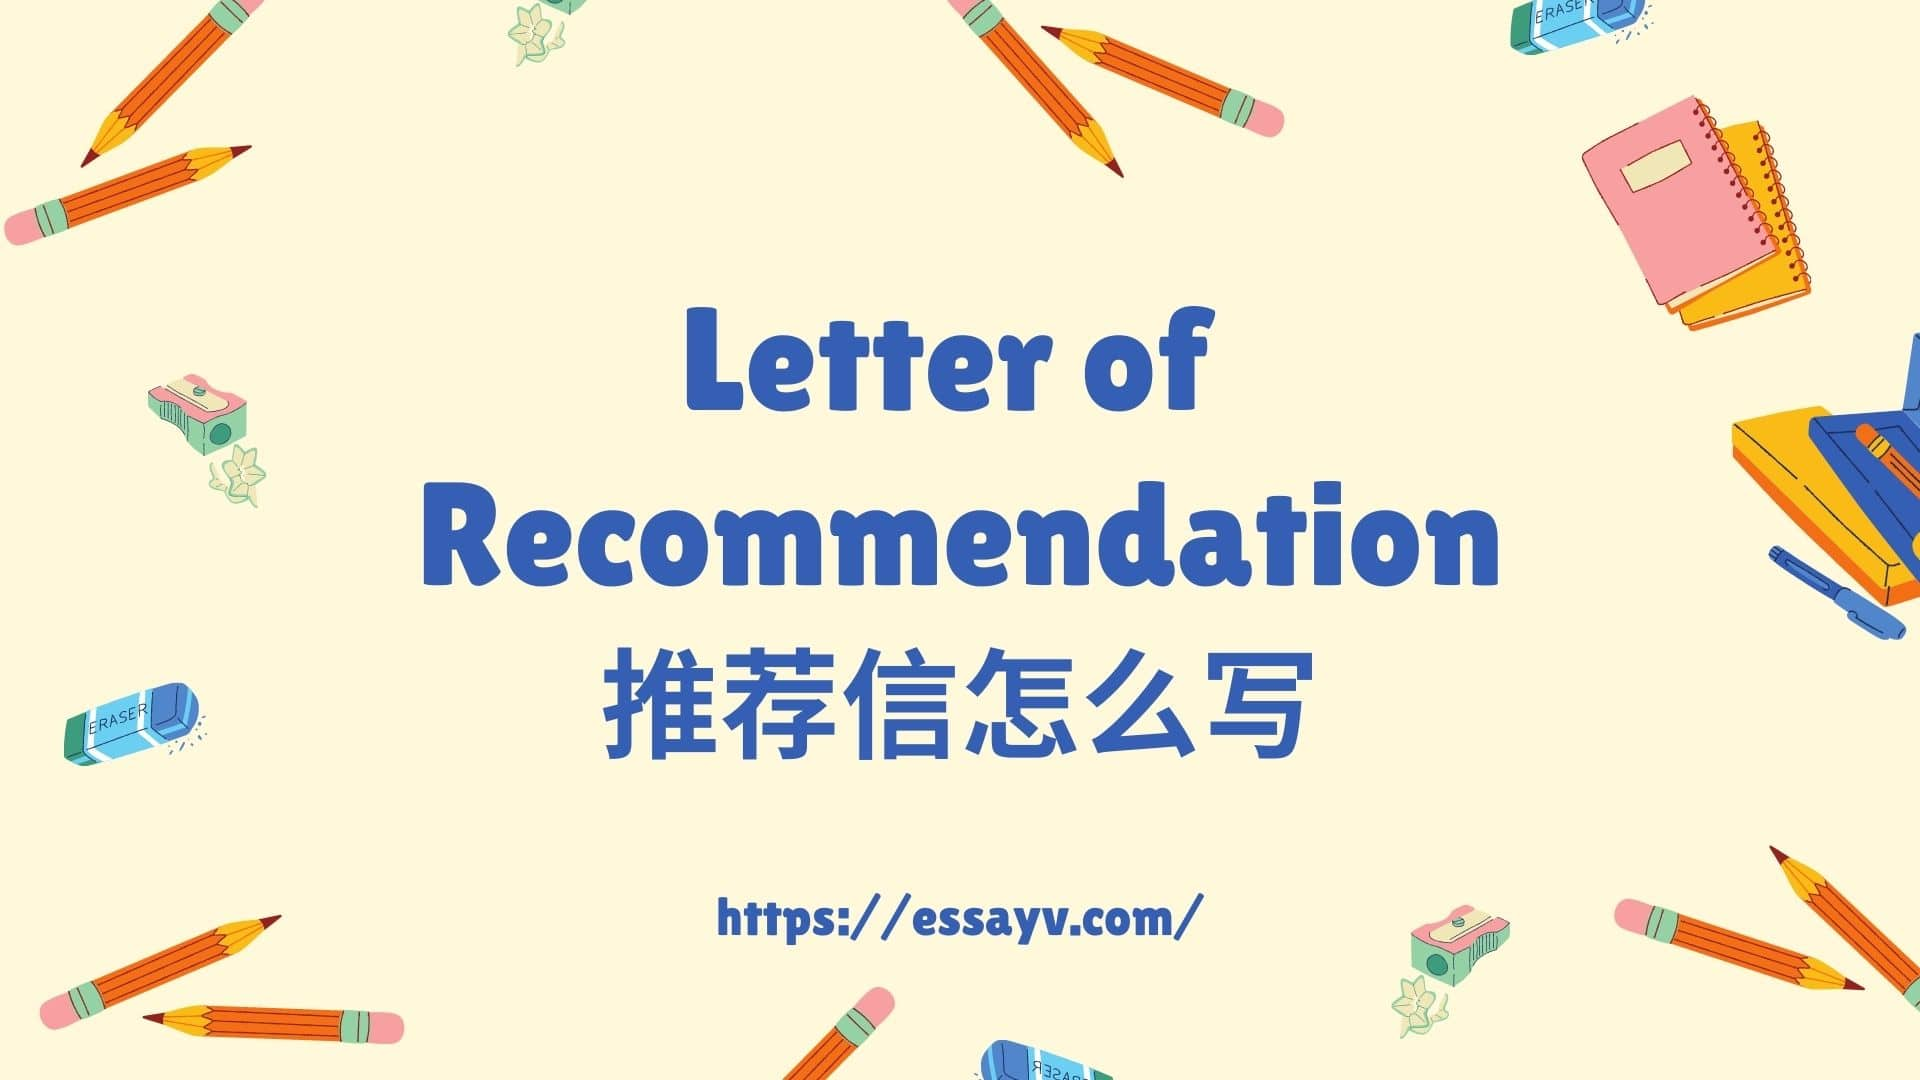 Letter of Recommendation 推荐信怎么写